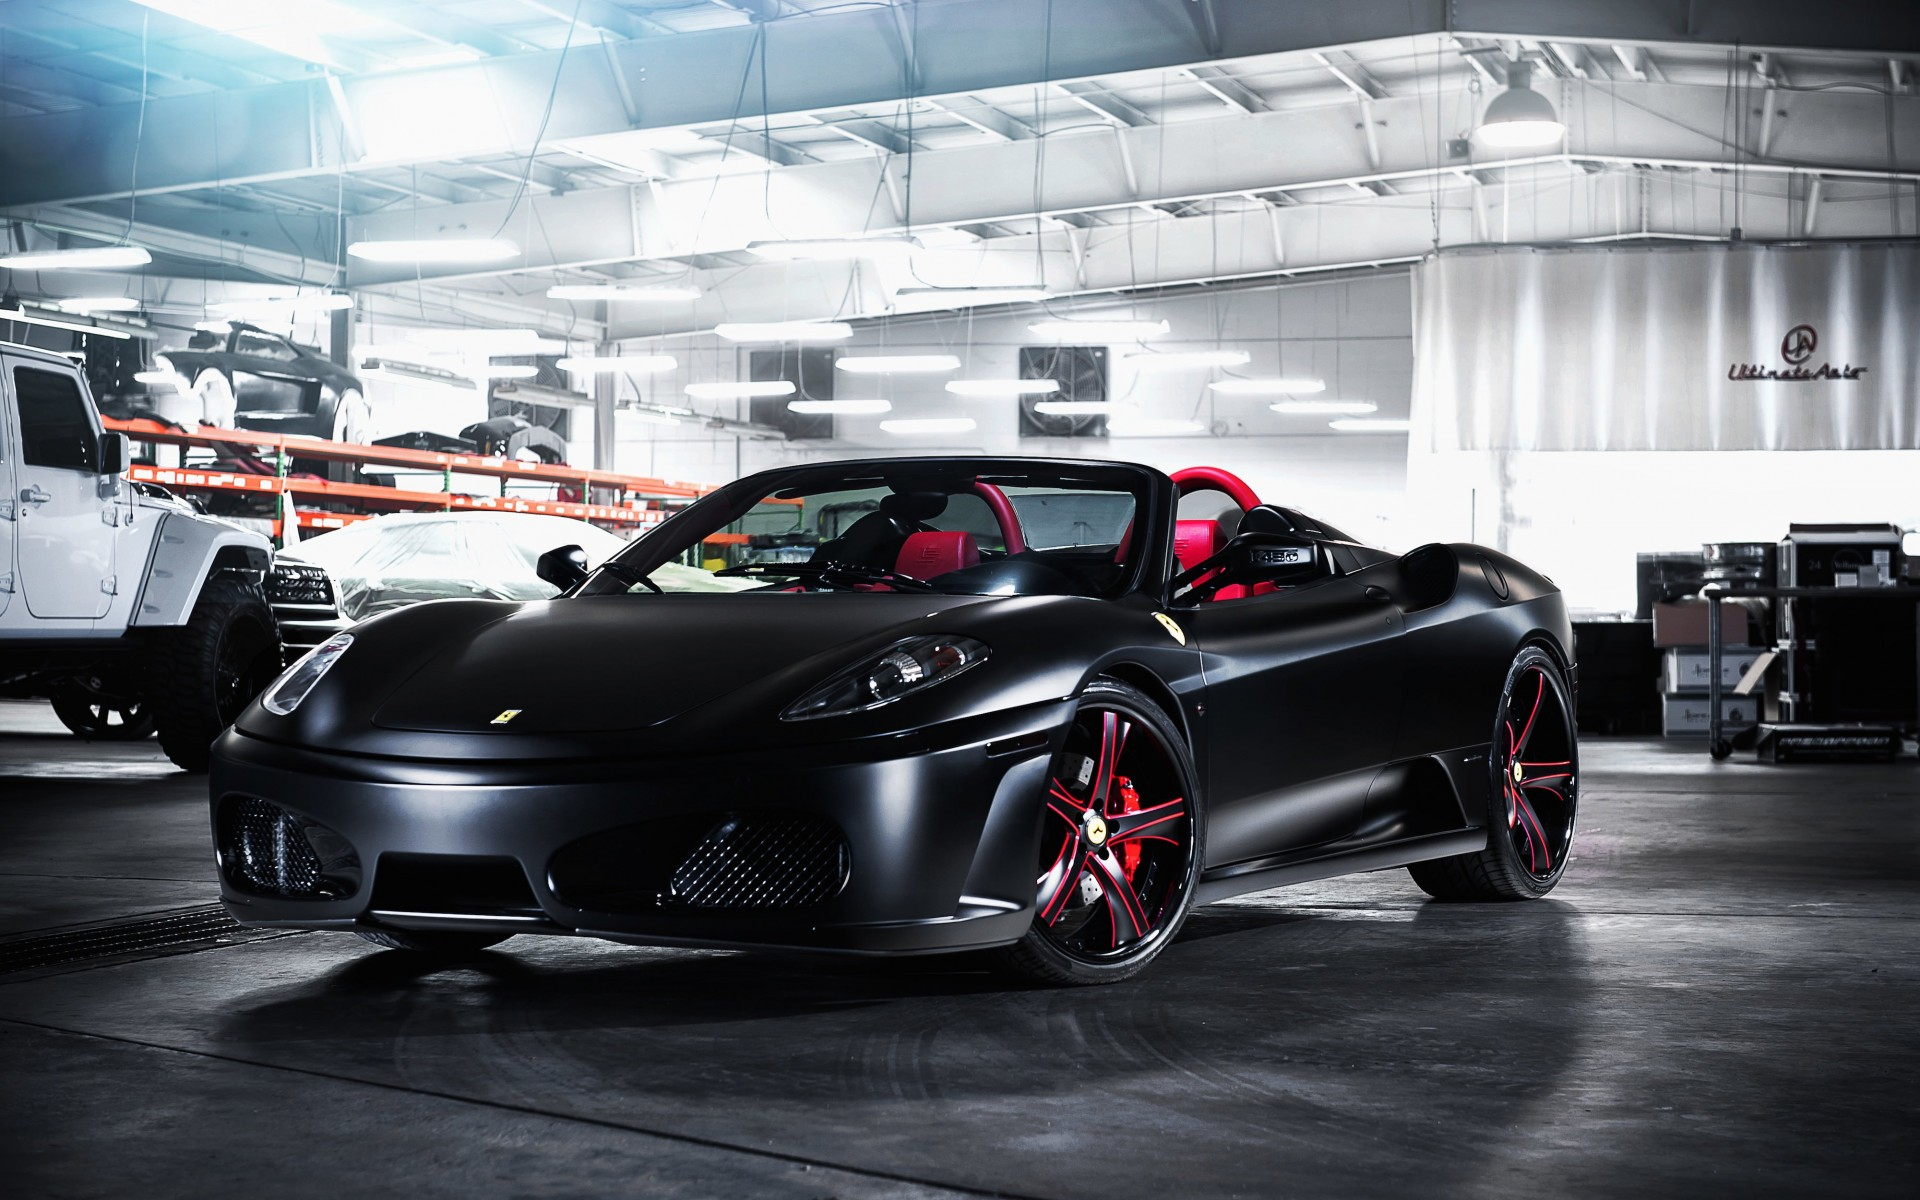 Matte Black Ferrari F430 on Savini Wheels Wallpaper for Desktop 1920x1200